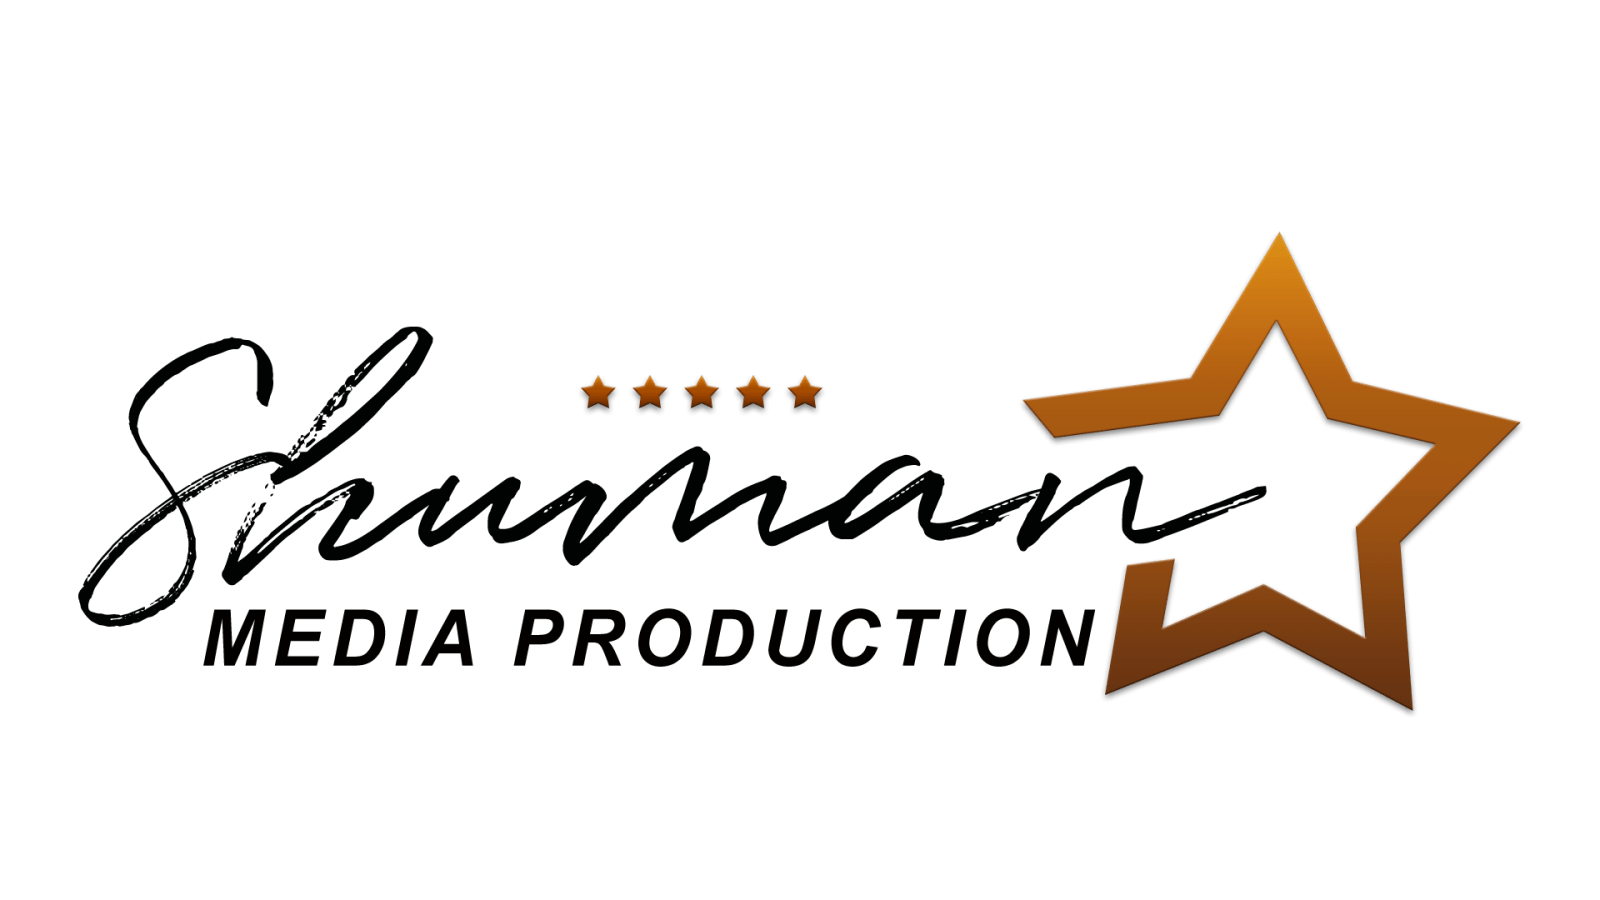 SHUMAN MEDIA PRODUCTION